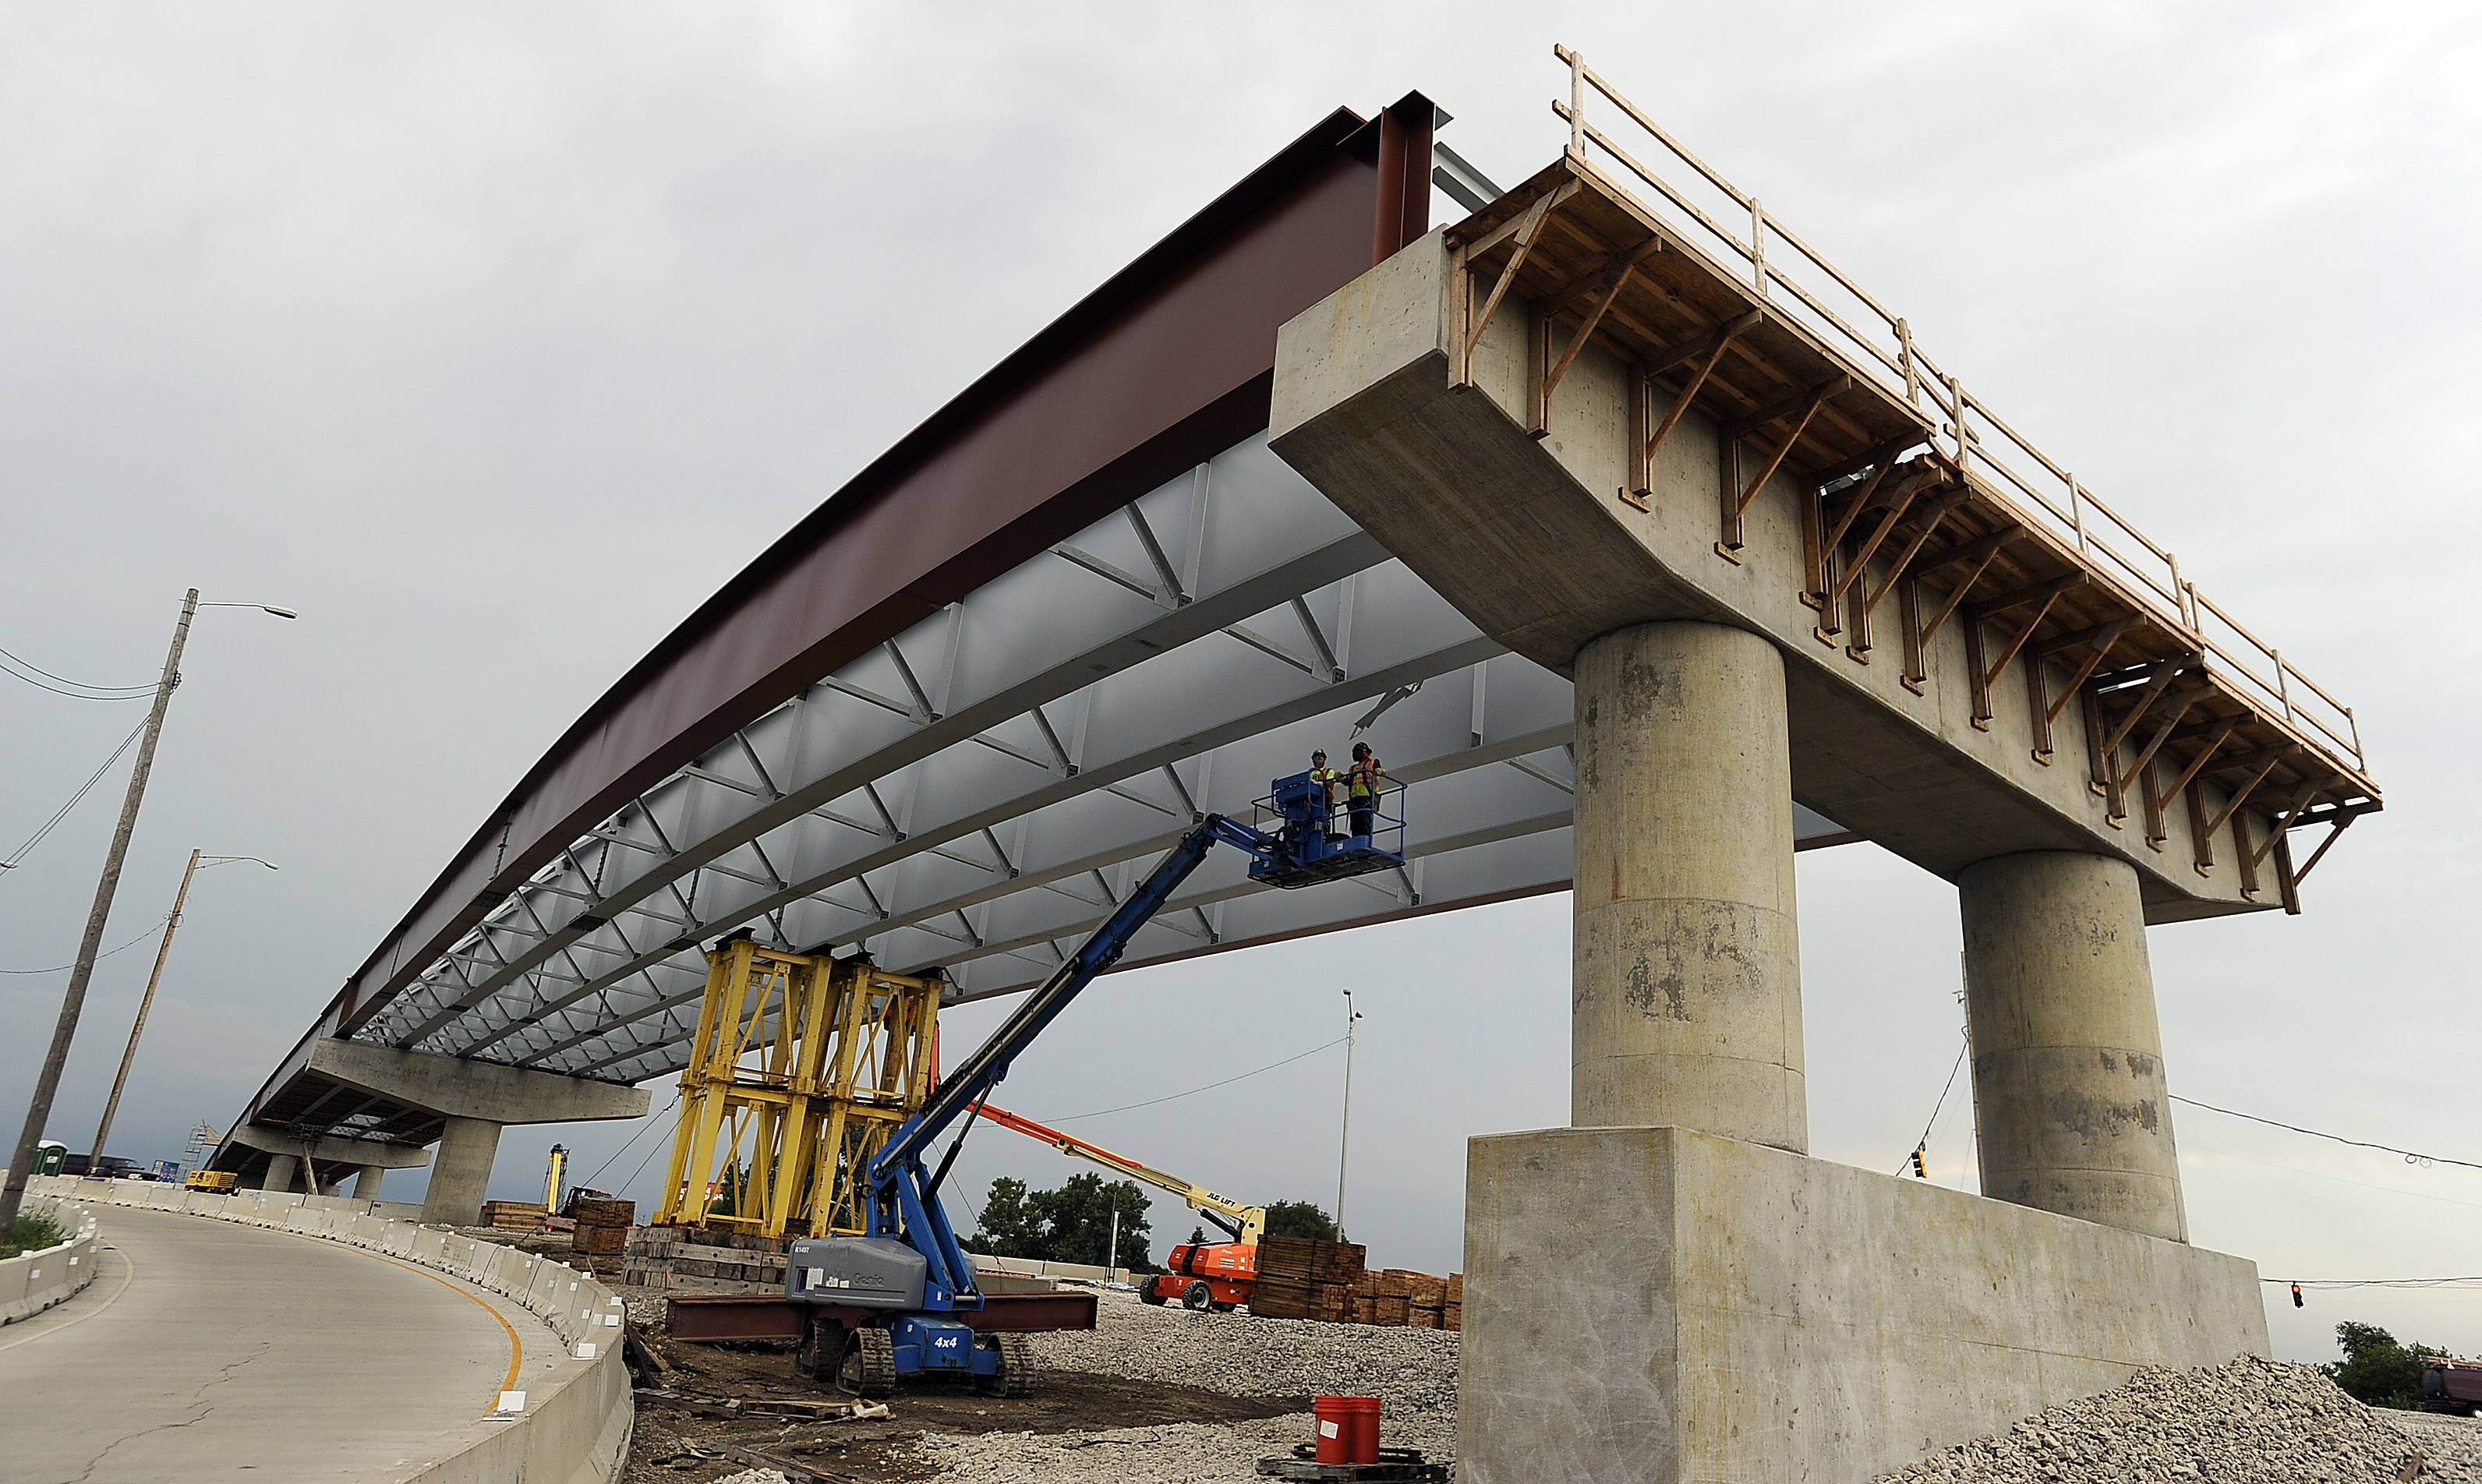 The bridge expansion section over the I-290/Elgin-O'Hare Expressway interchange is in full swing with the another section being added in October. The project is expected to be complete in 2017.